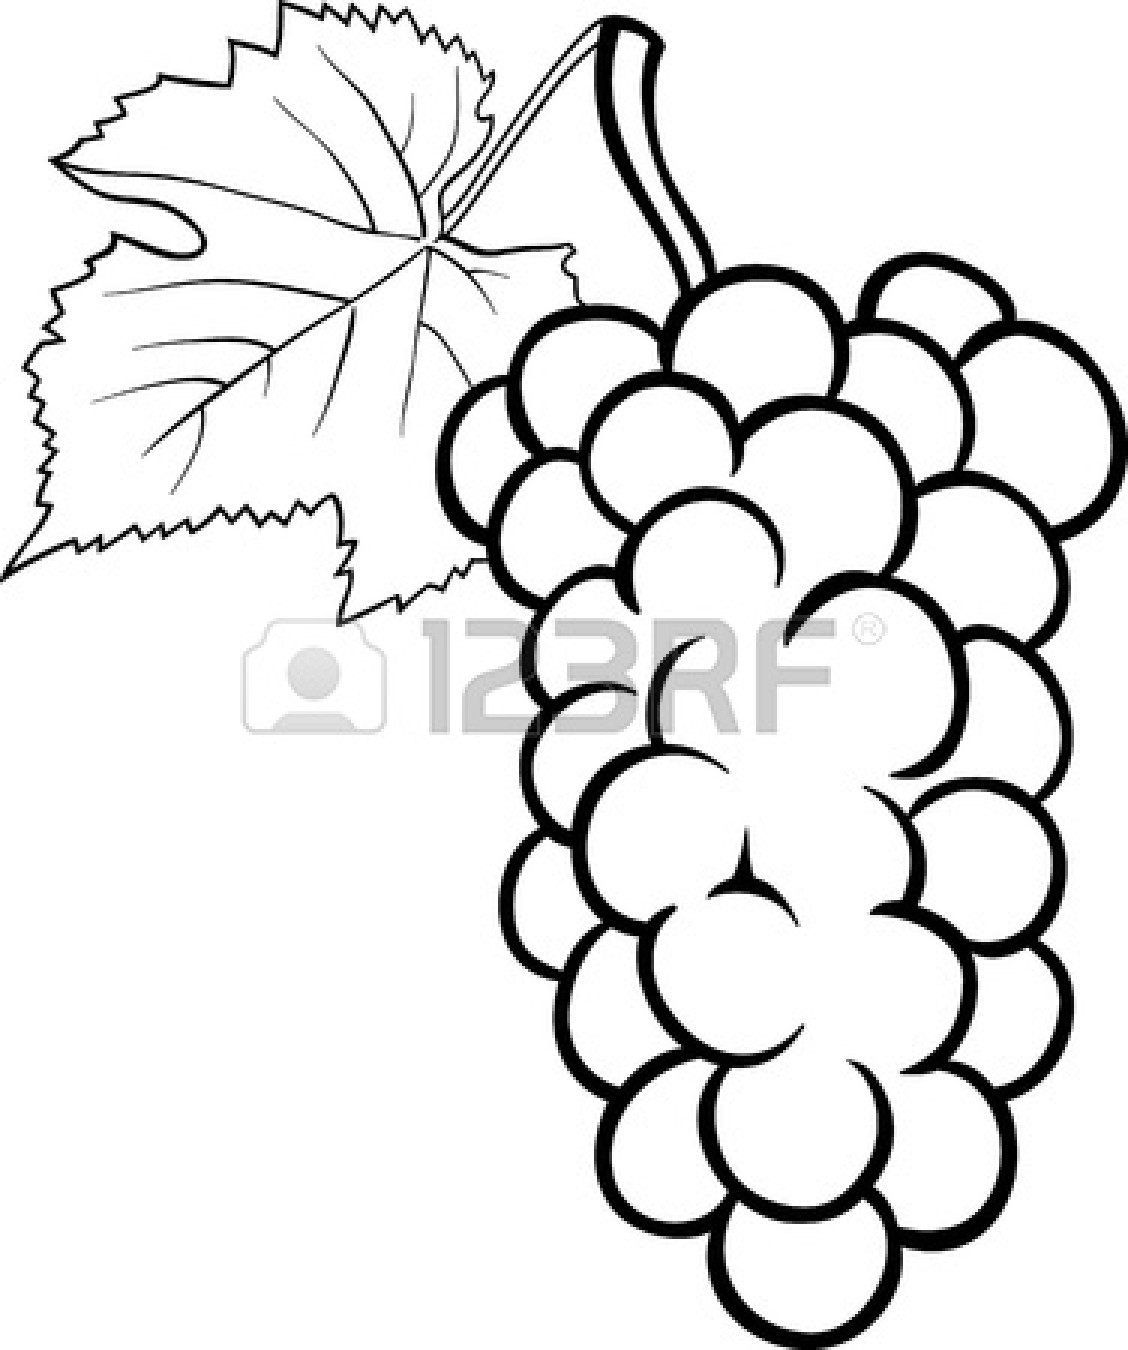 Clipart Black And White Fruit And Vegetable Clipart Black And White